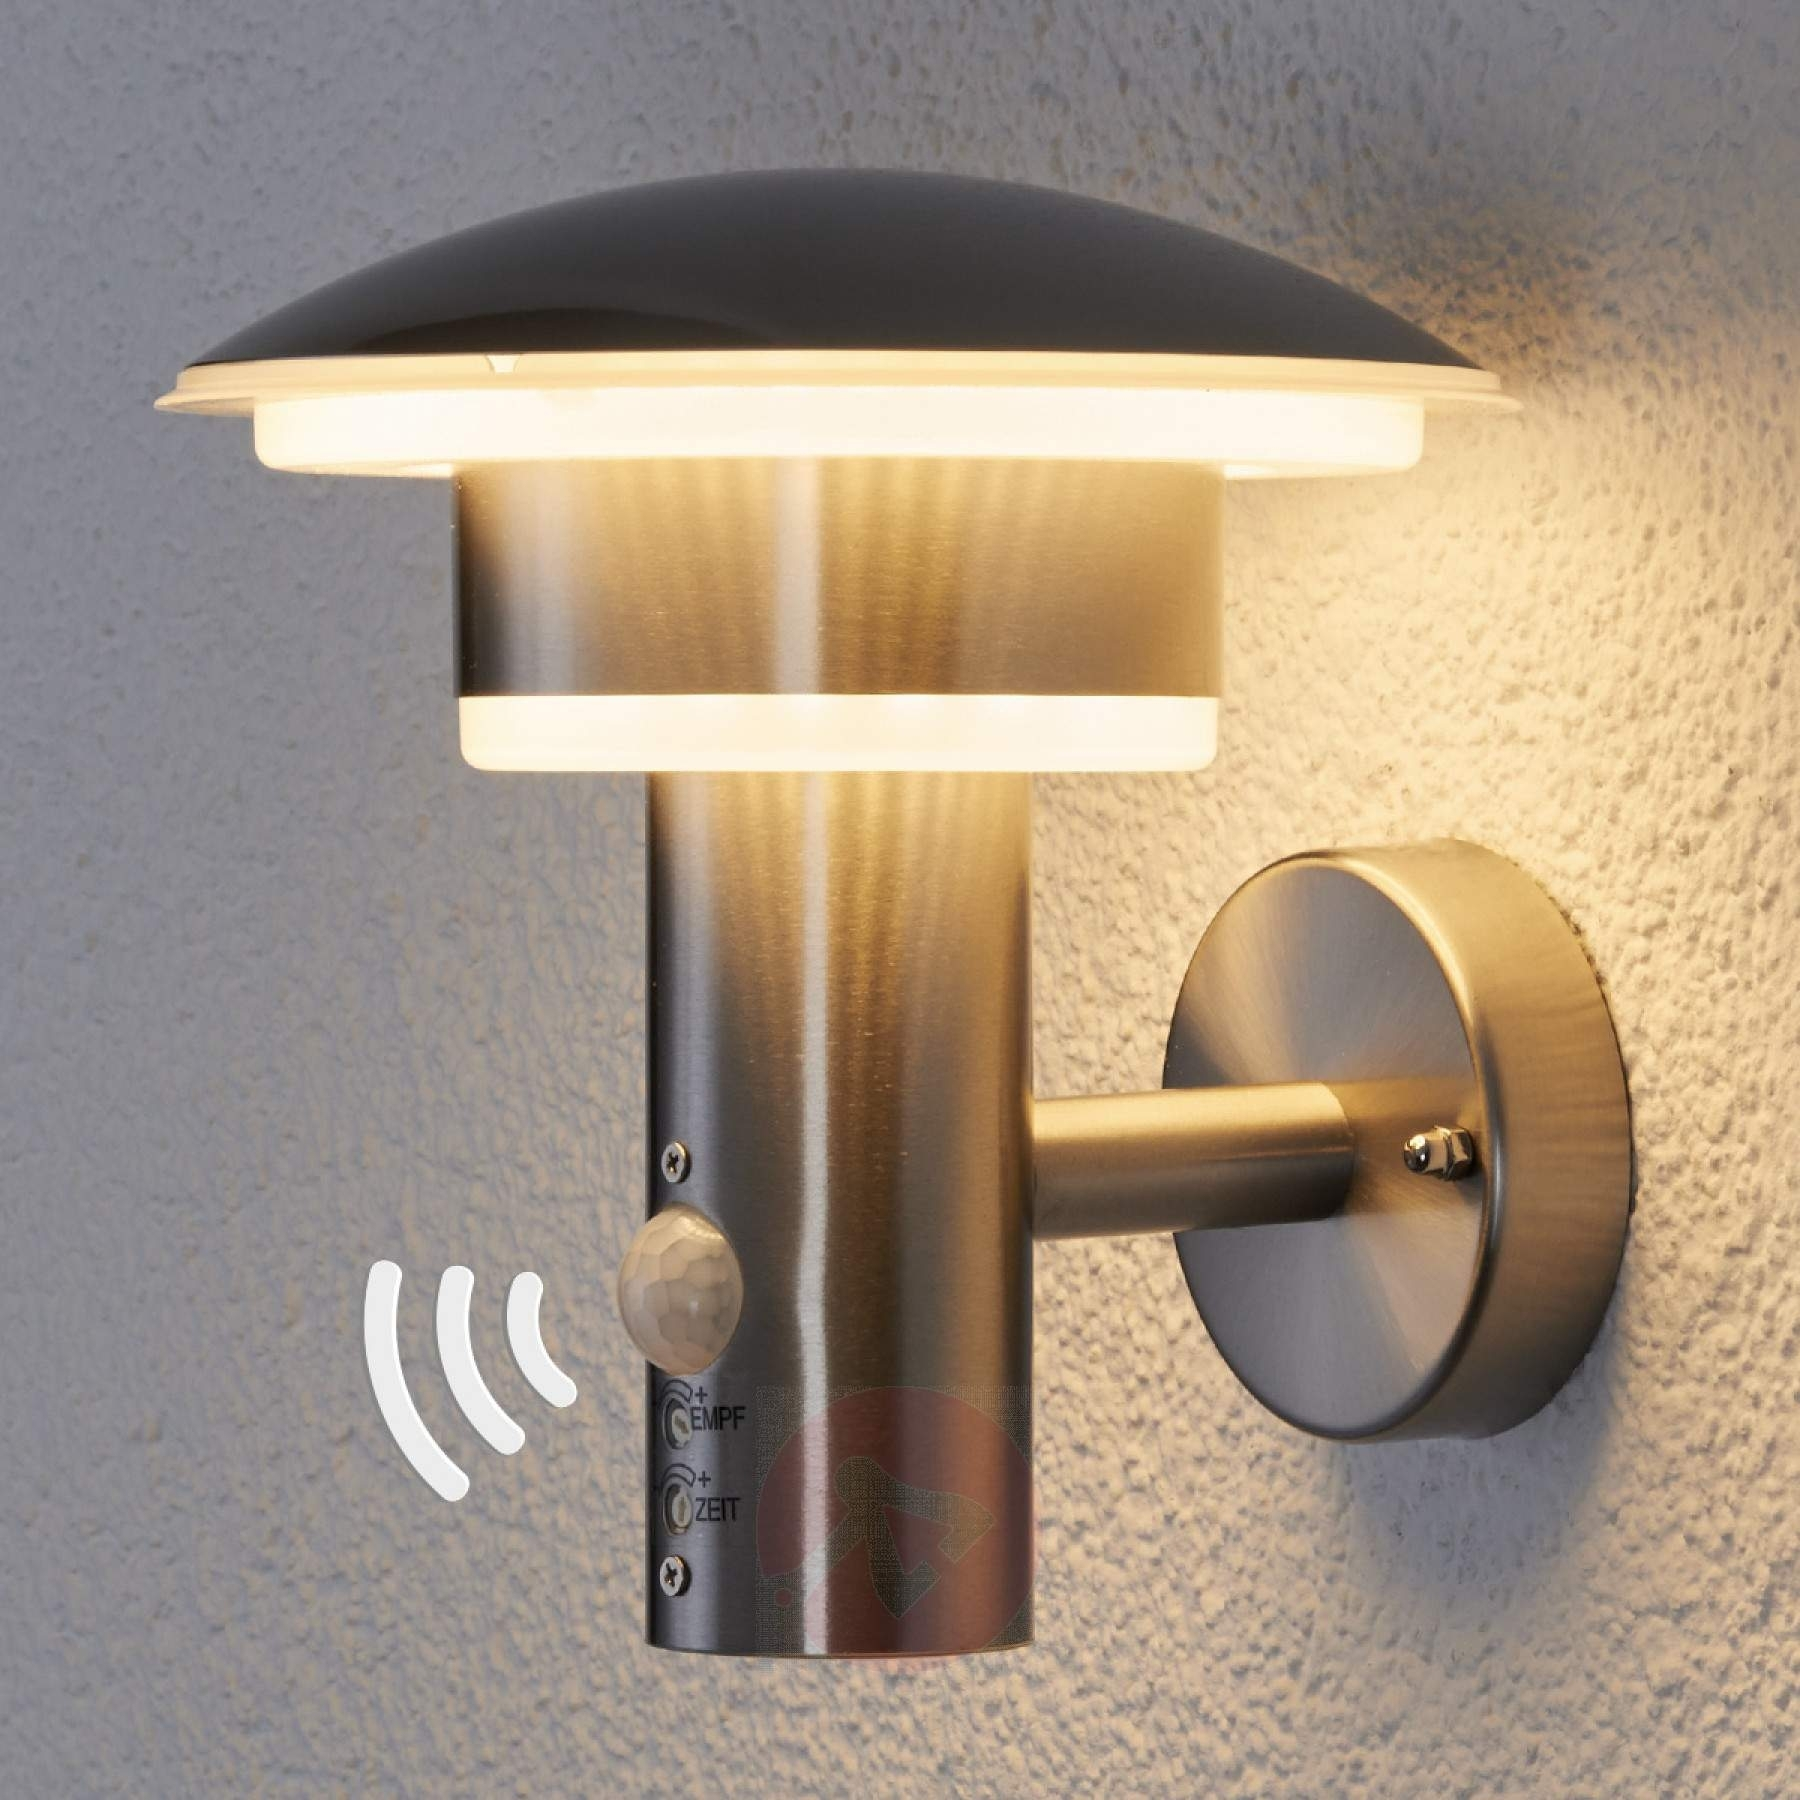 Buy Stainless Steel Outdoor Wall Lights From Lights.co (#5 of 15)